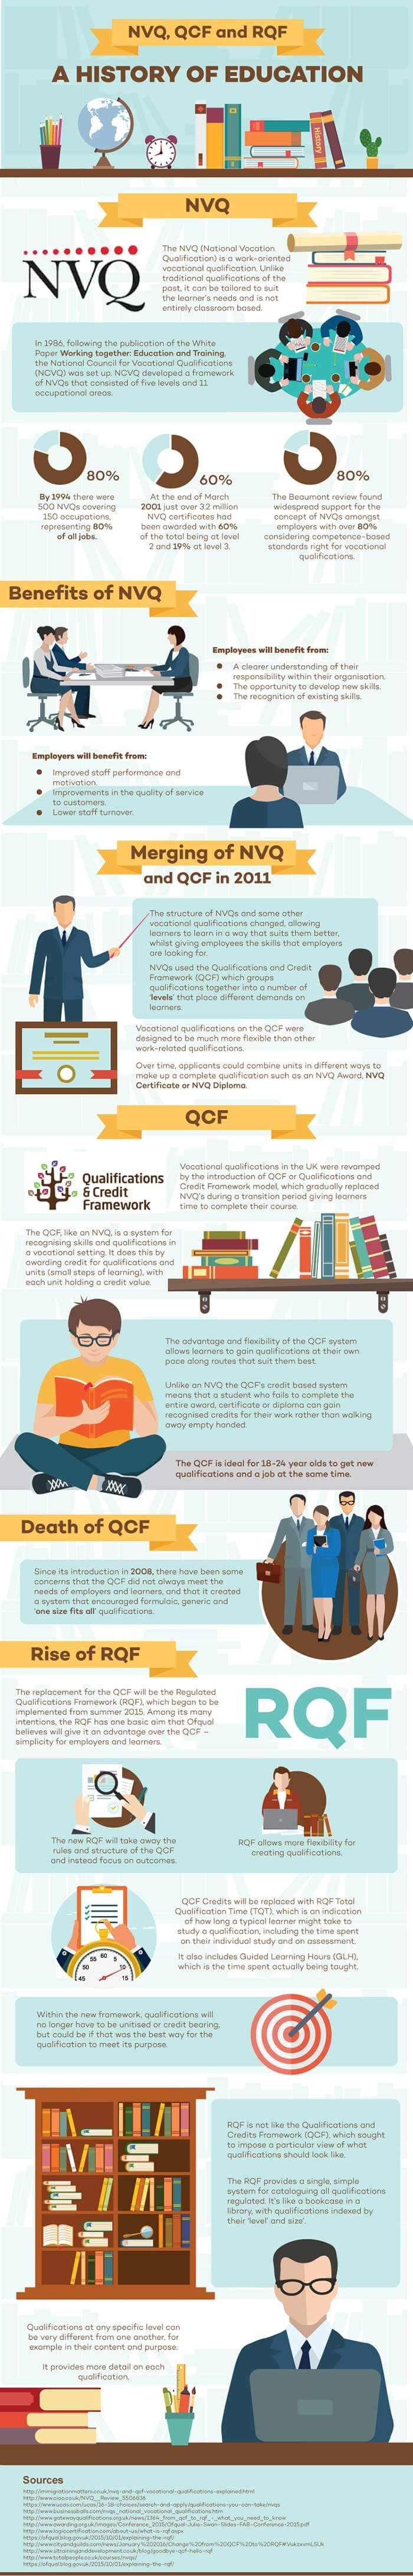 Differences Between QCF, RQF and NVQ